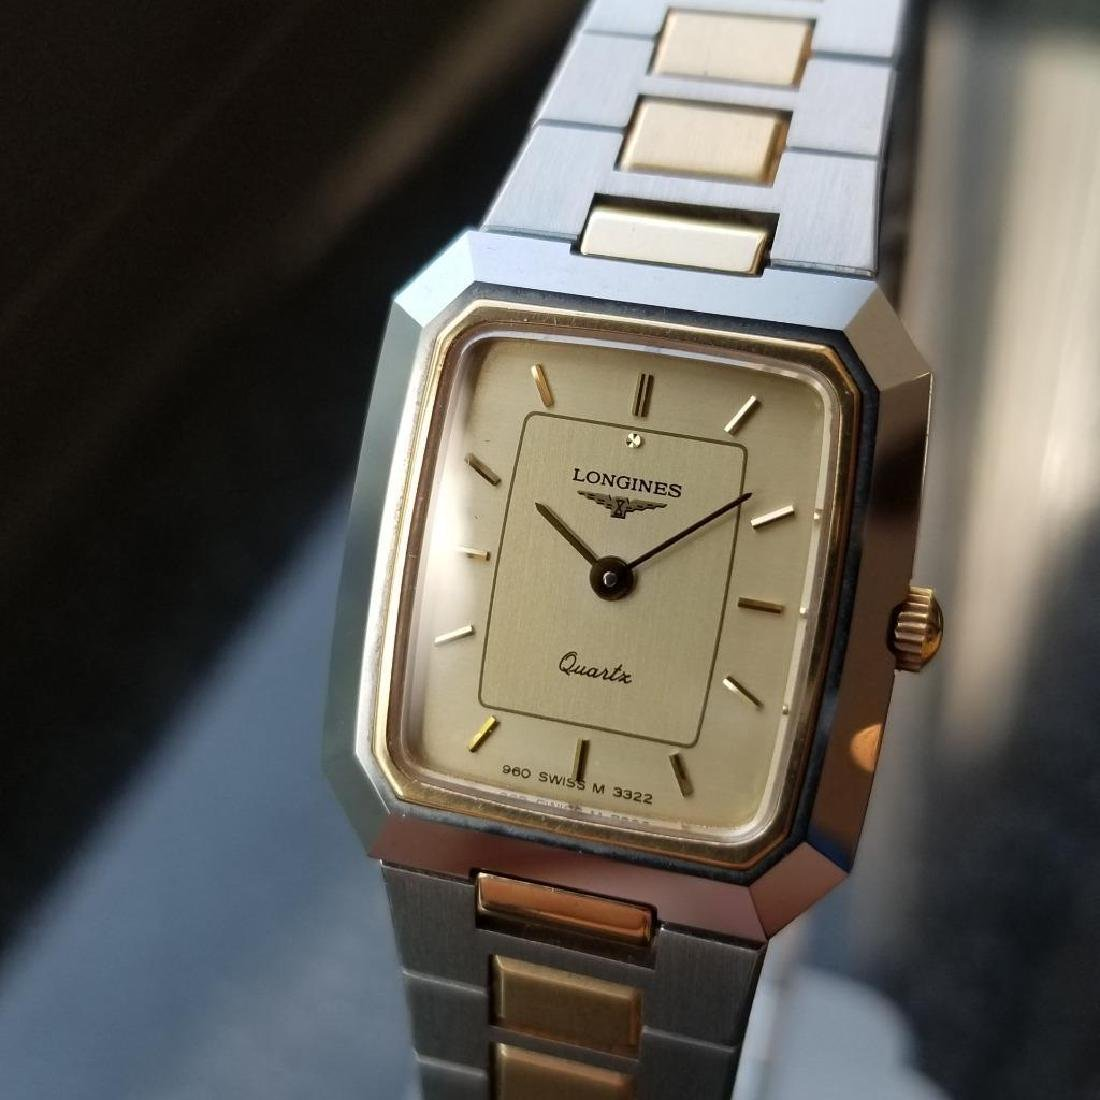 Longines Ladies 1980s Gold Plated Stainless Quartz